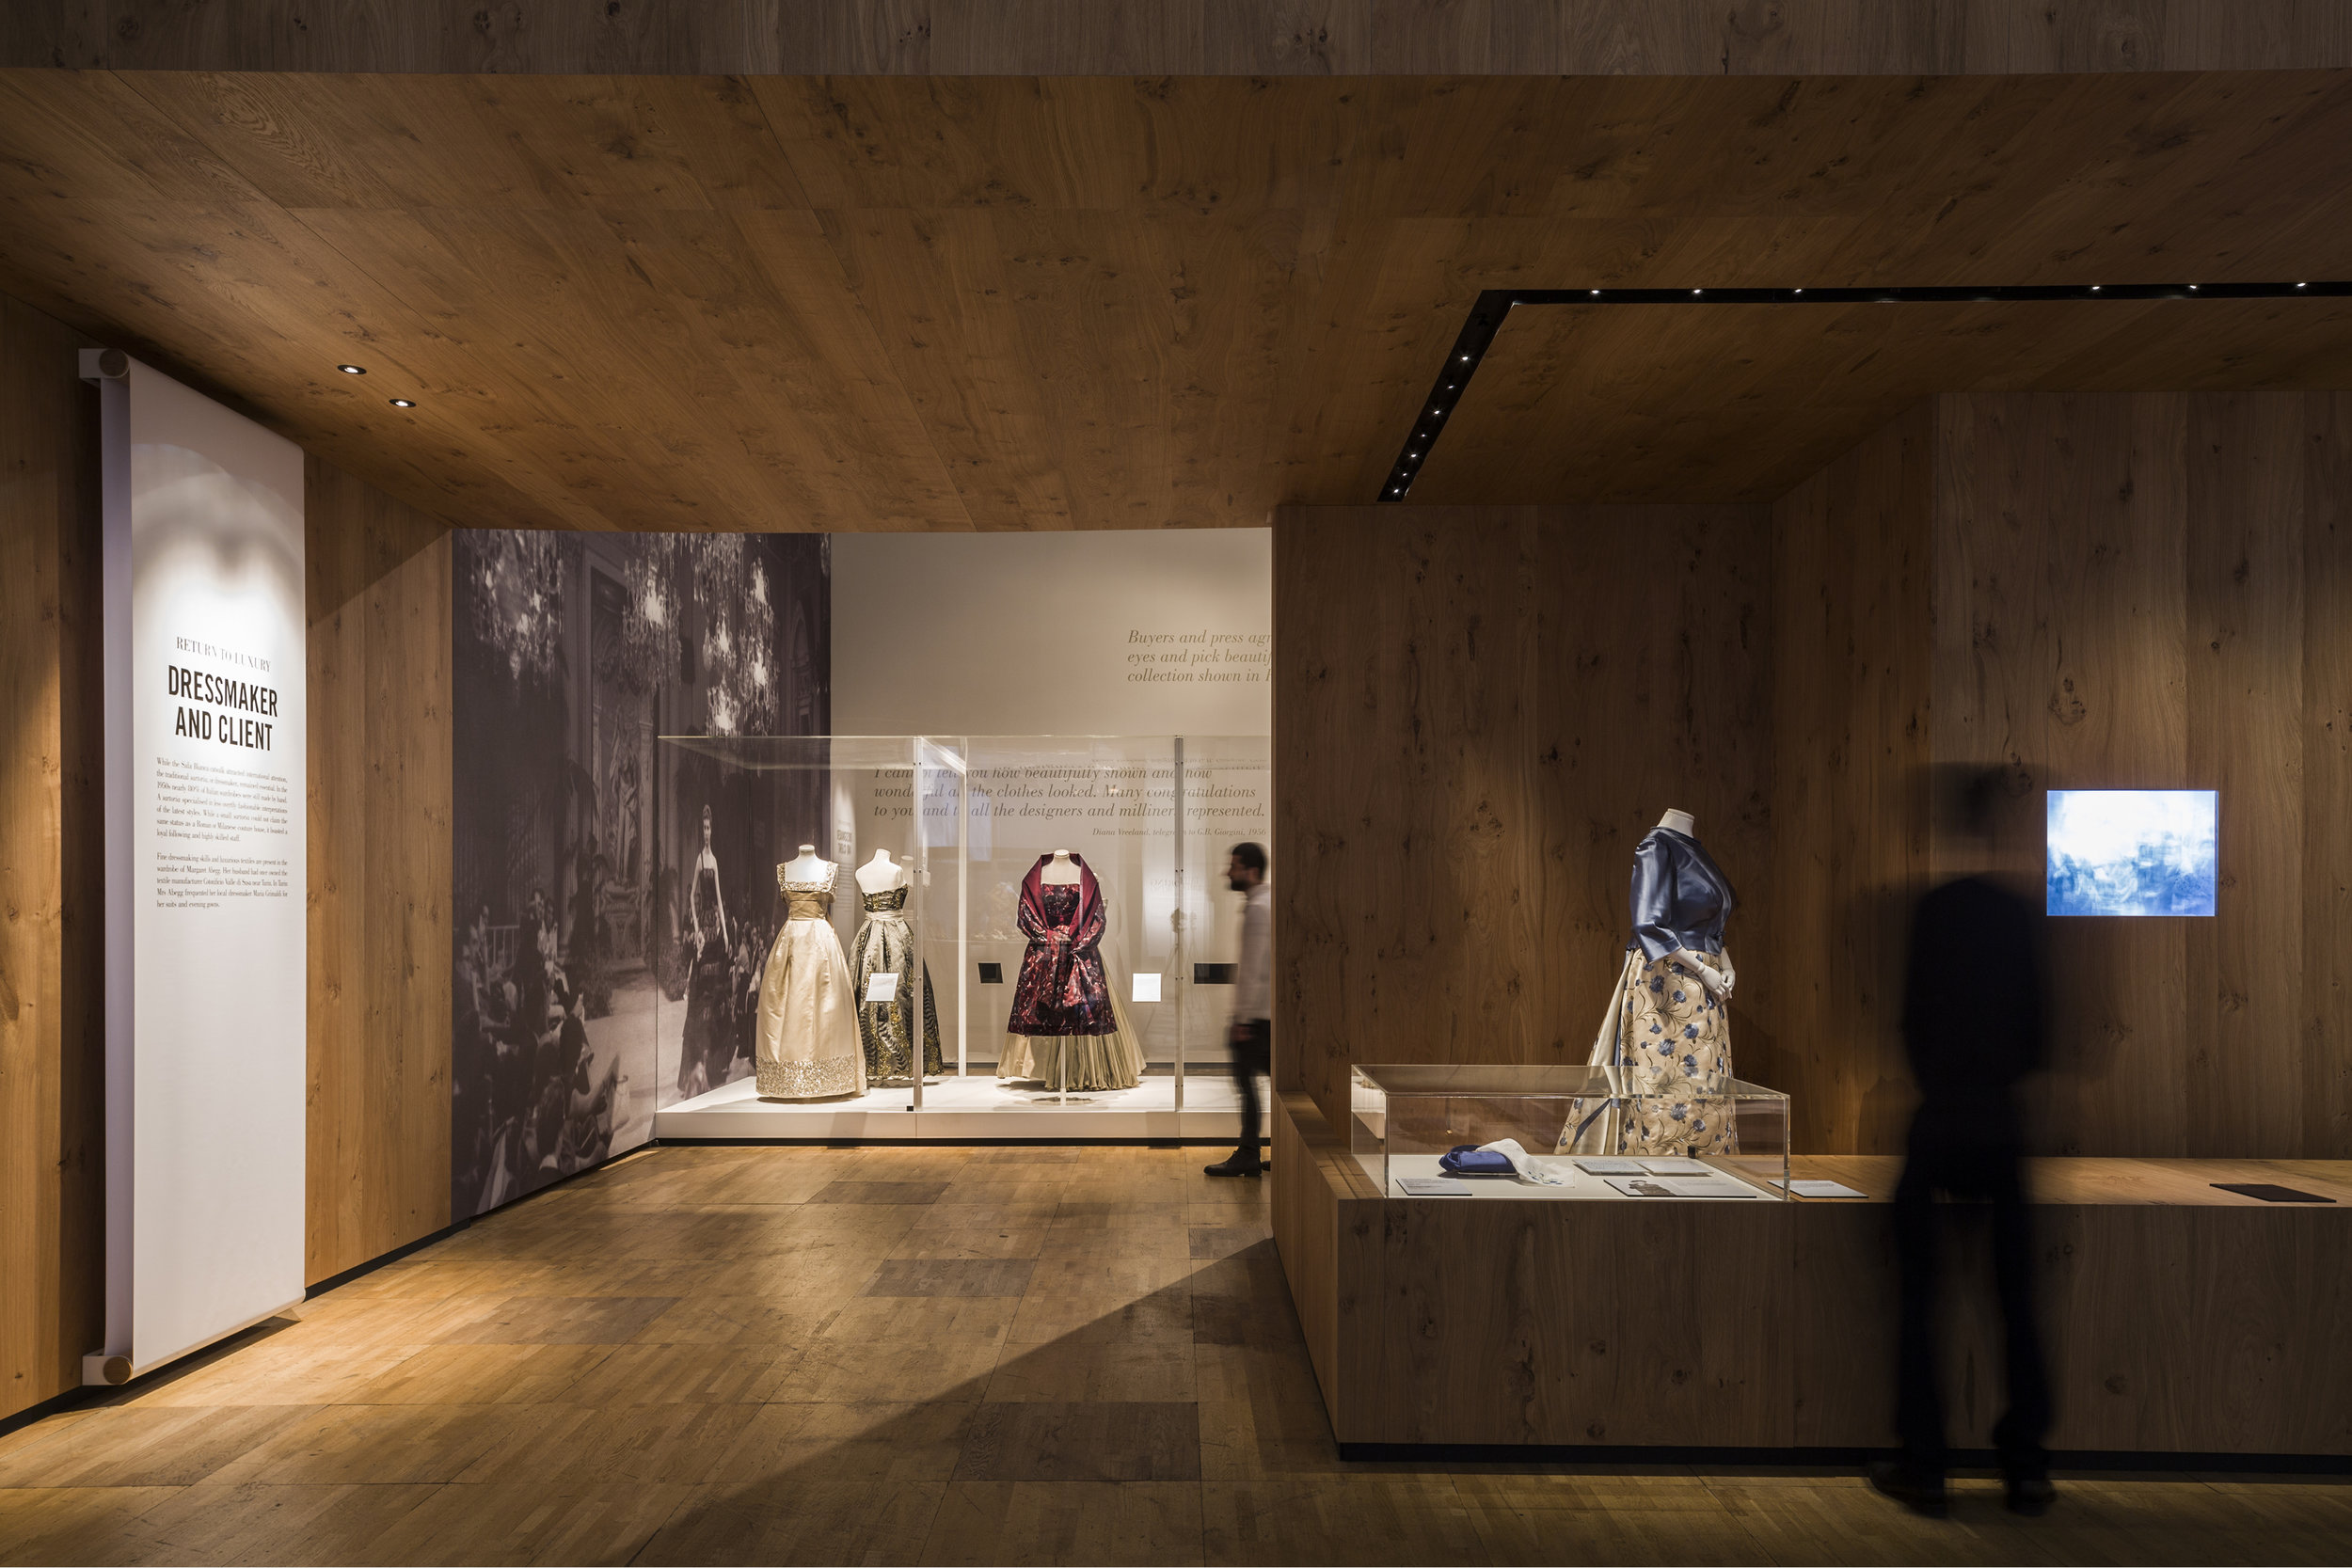 Exhibition Design for the Glamour of Italian Fashion Exhibition at the V&A Museum